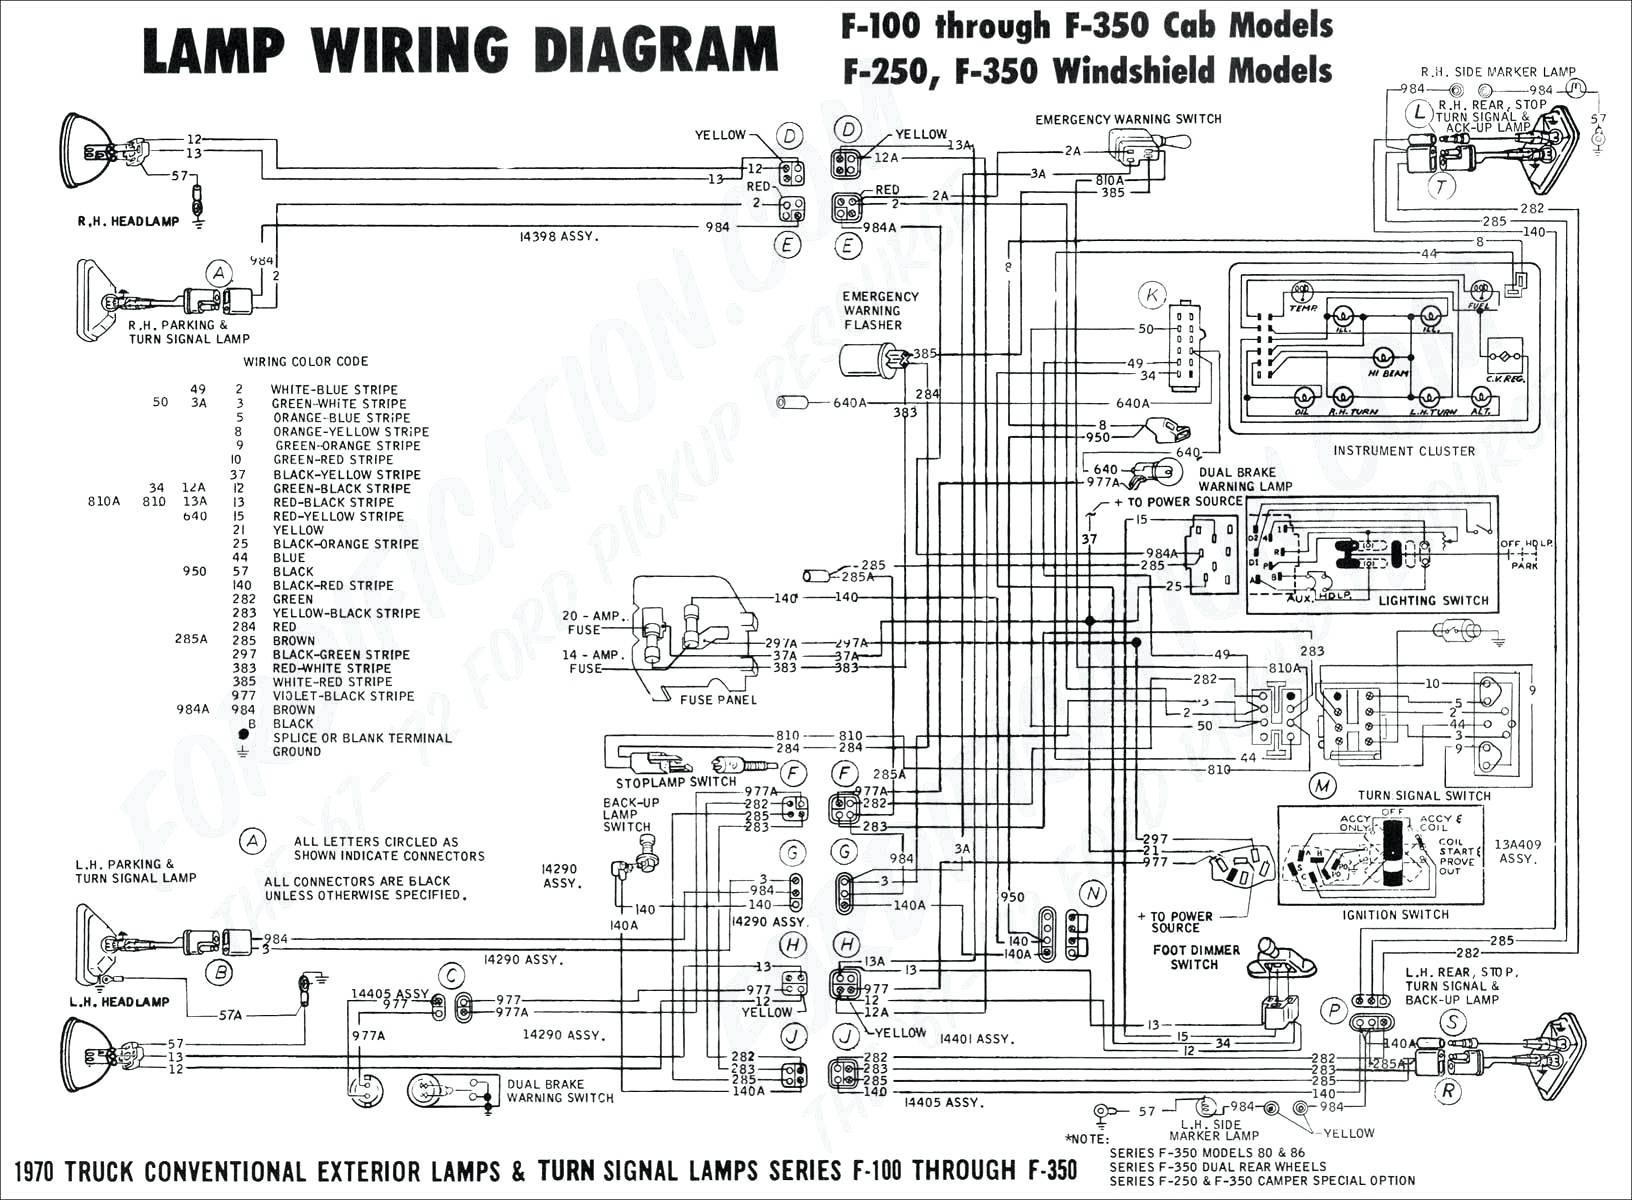 Turn Signal Flasher Wiring Diagram Free Download S Series Wiring Diagram Wiring Diagram Database Of Turn Signal Flasher Wiring Diagram